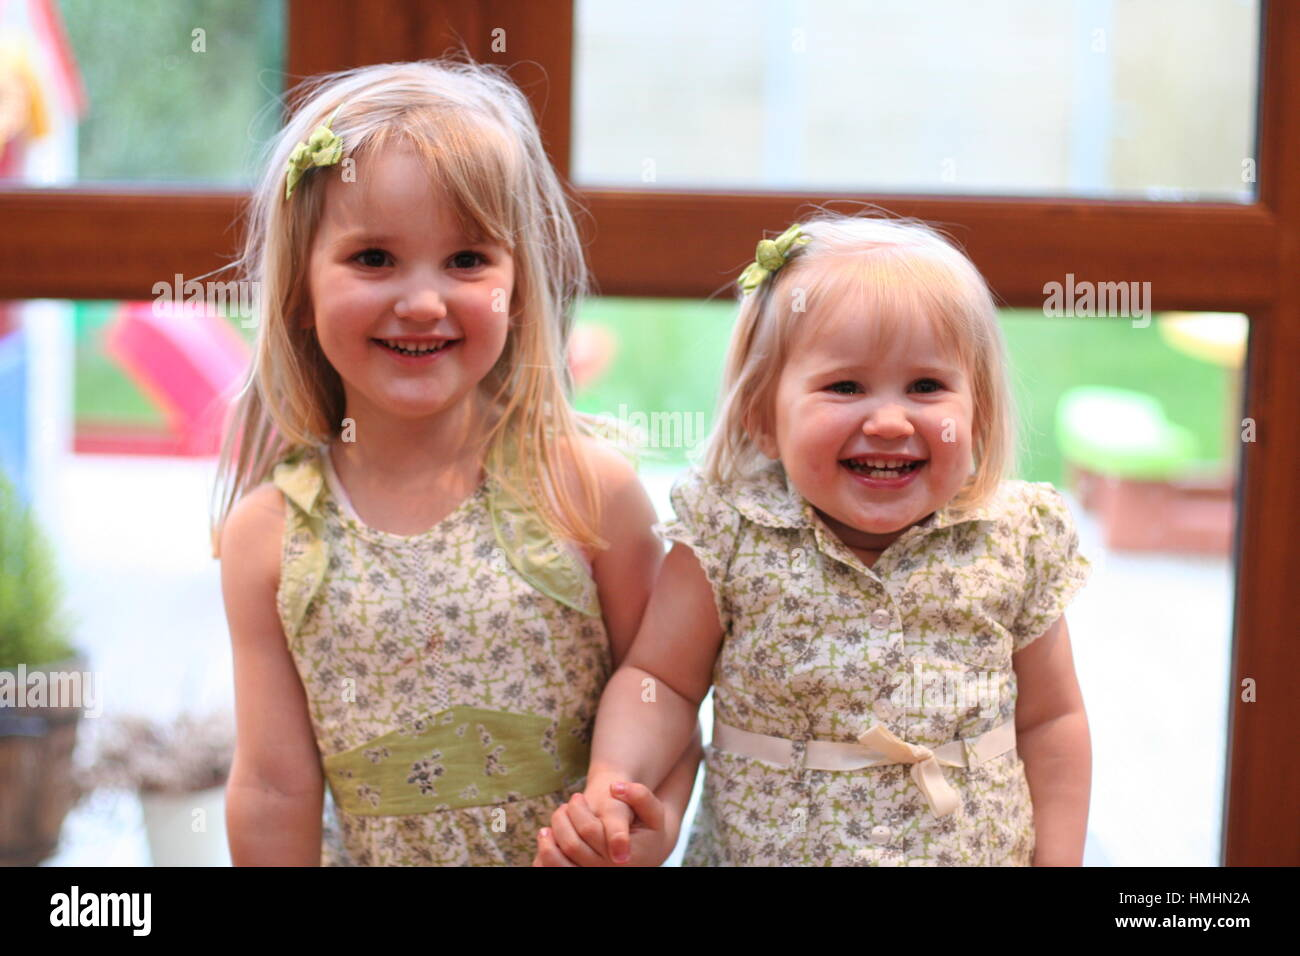 little girls blonde kids big wide smiles face, laughing out loud wearing matching outfits happy blonde children - Stock Image